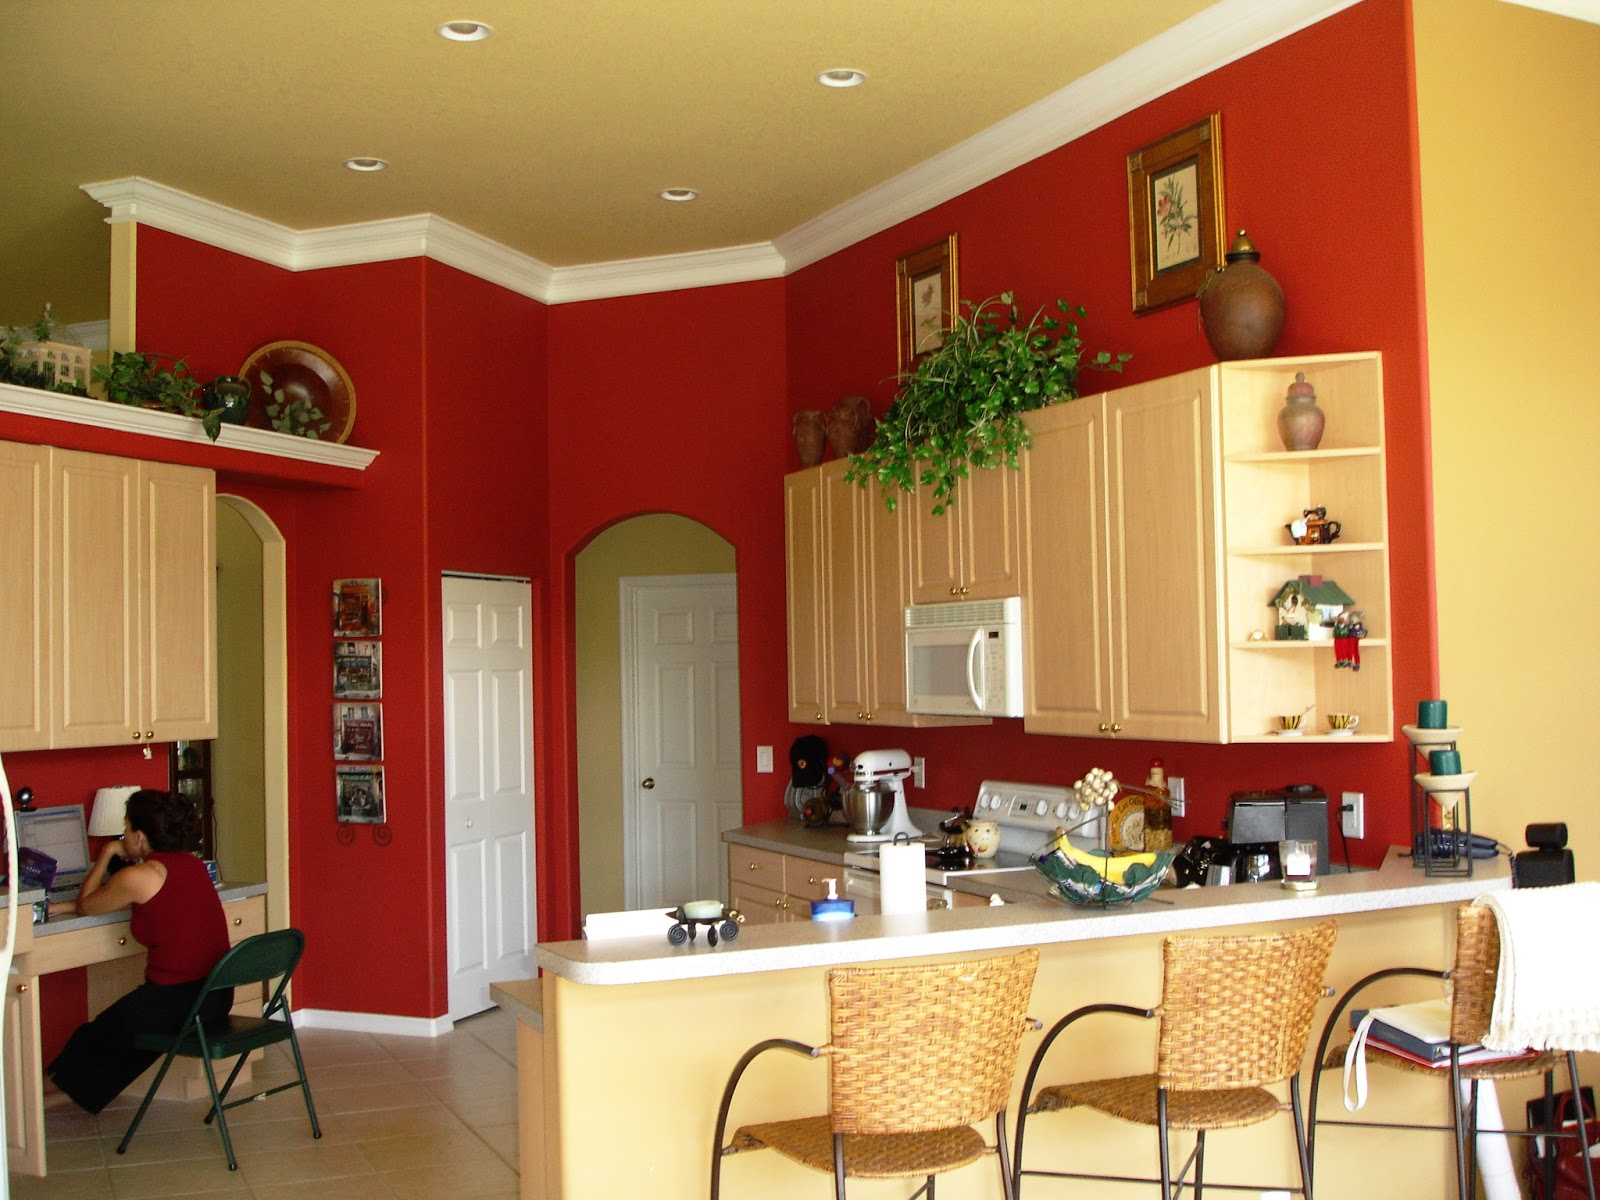 Wall Paint Design For Kitchen : Popular paint colors accent walls home decorating ideas